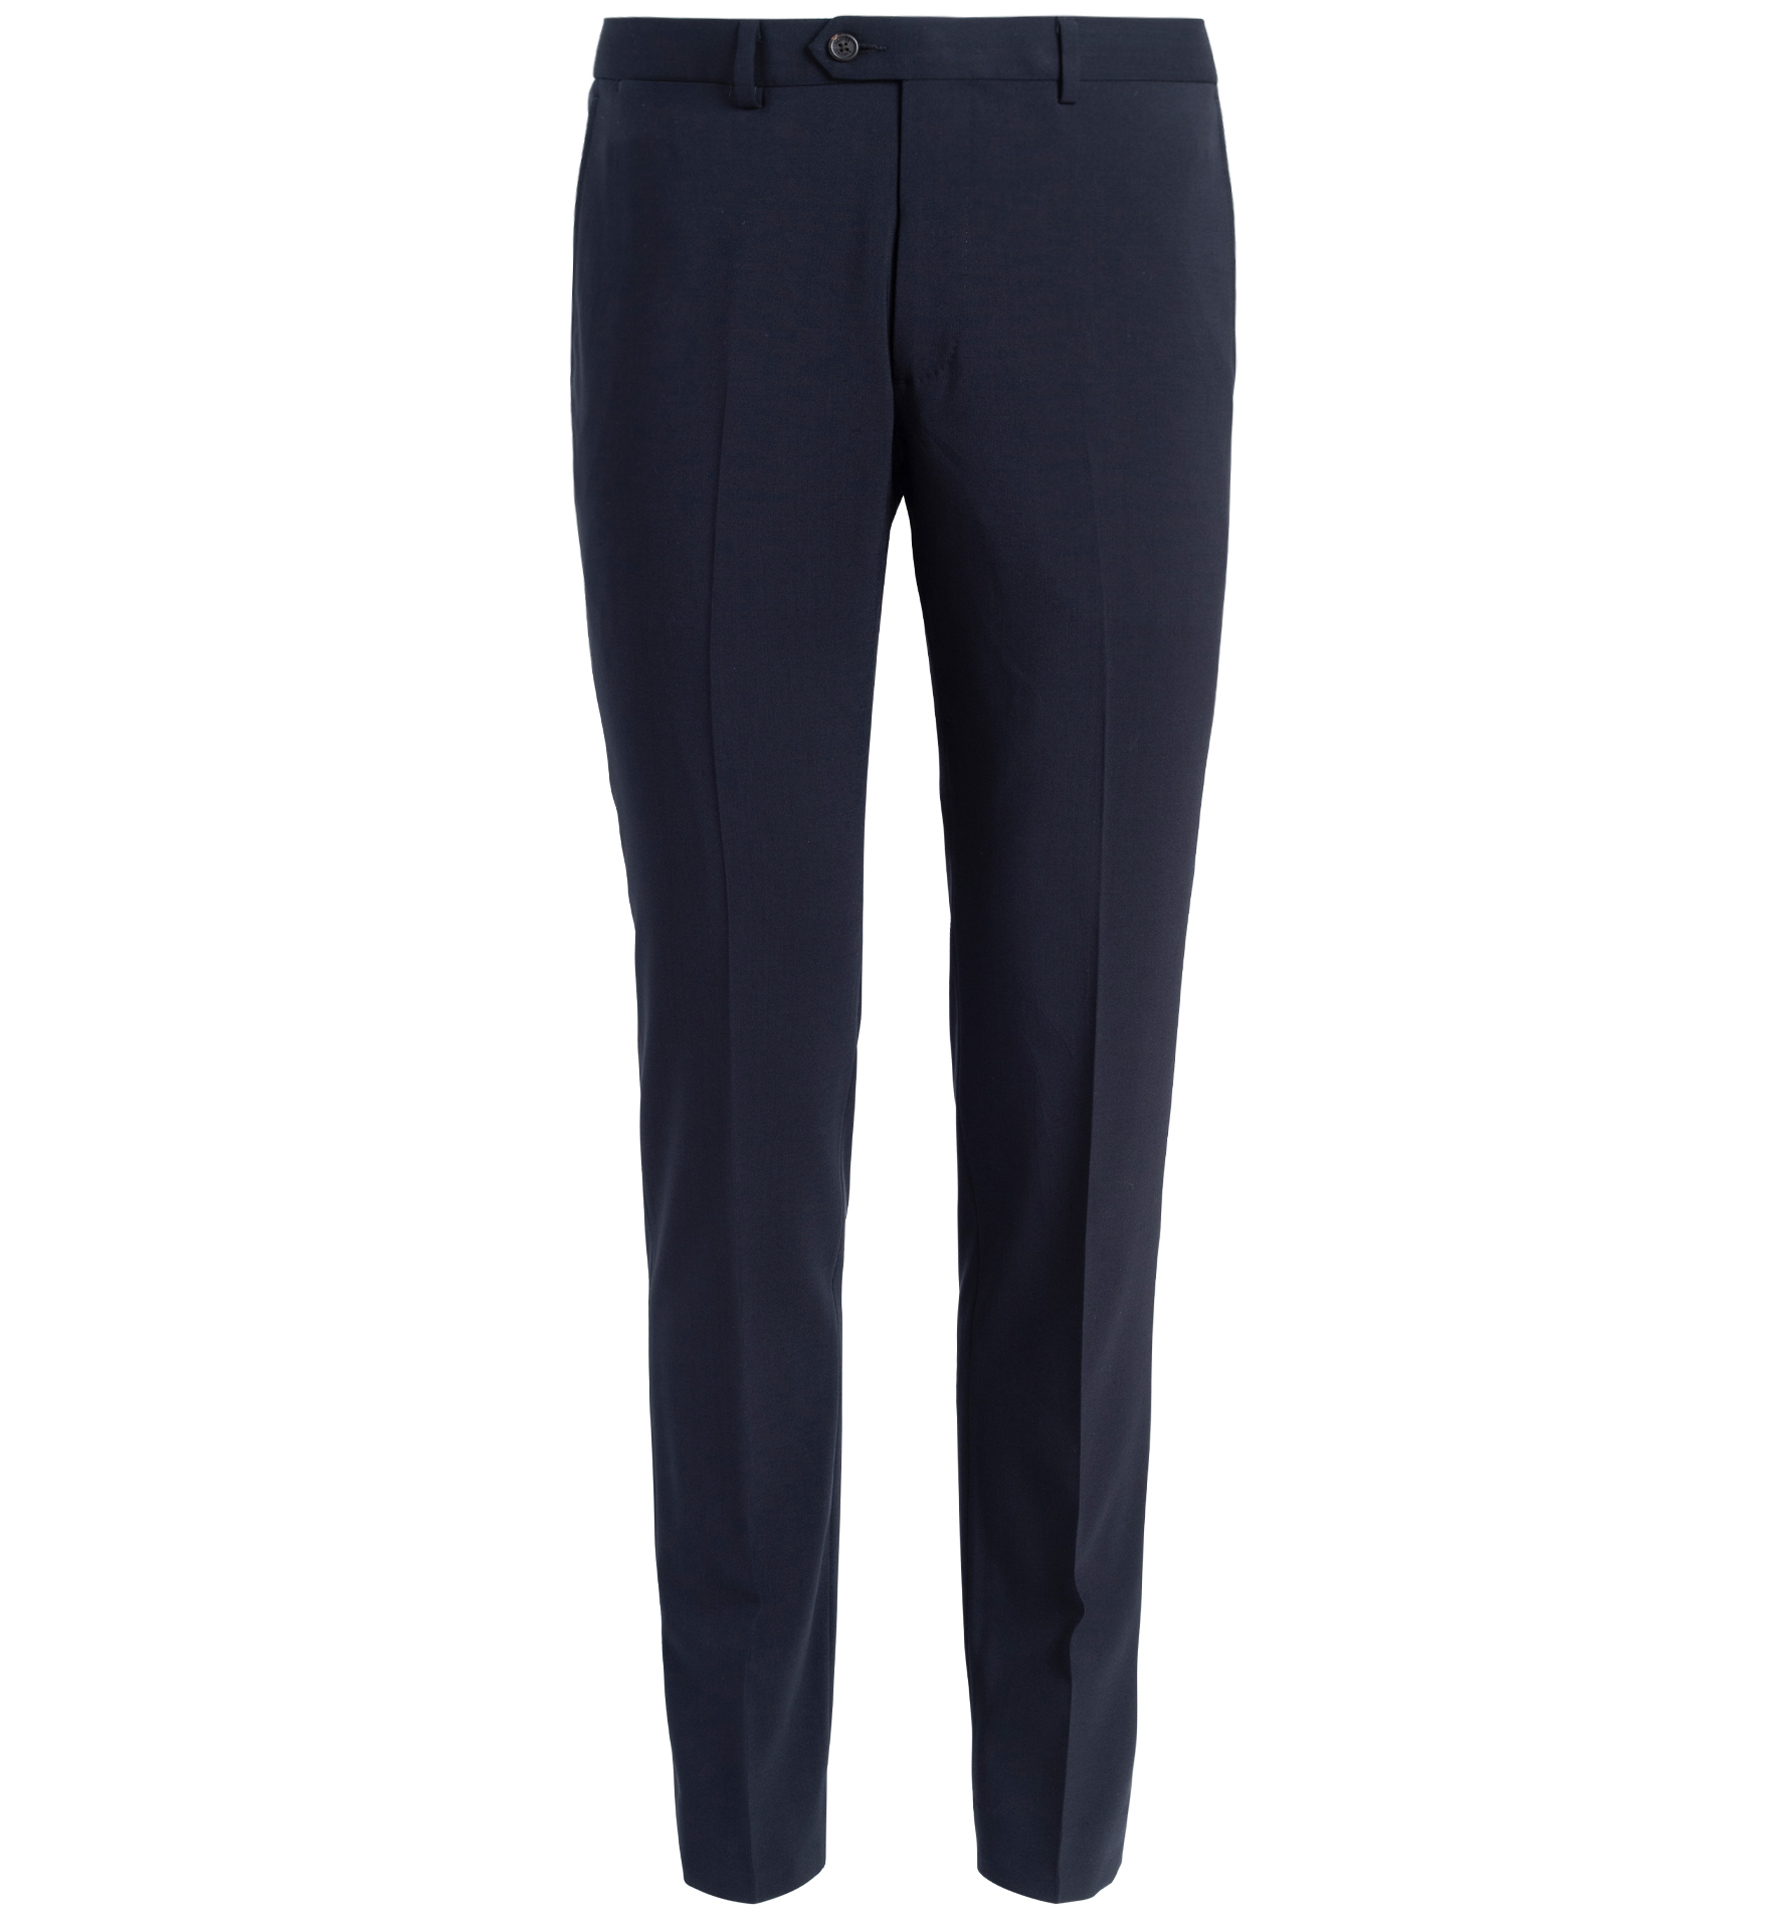 Zoom Image of Allen Navy Stretch Tropical Wool Trouser